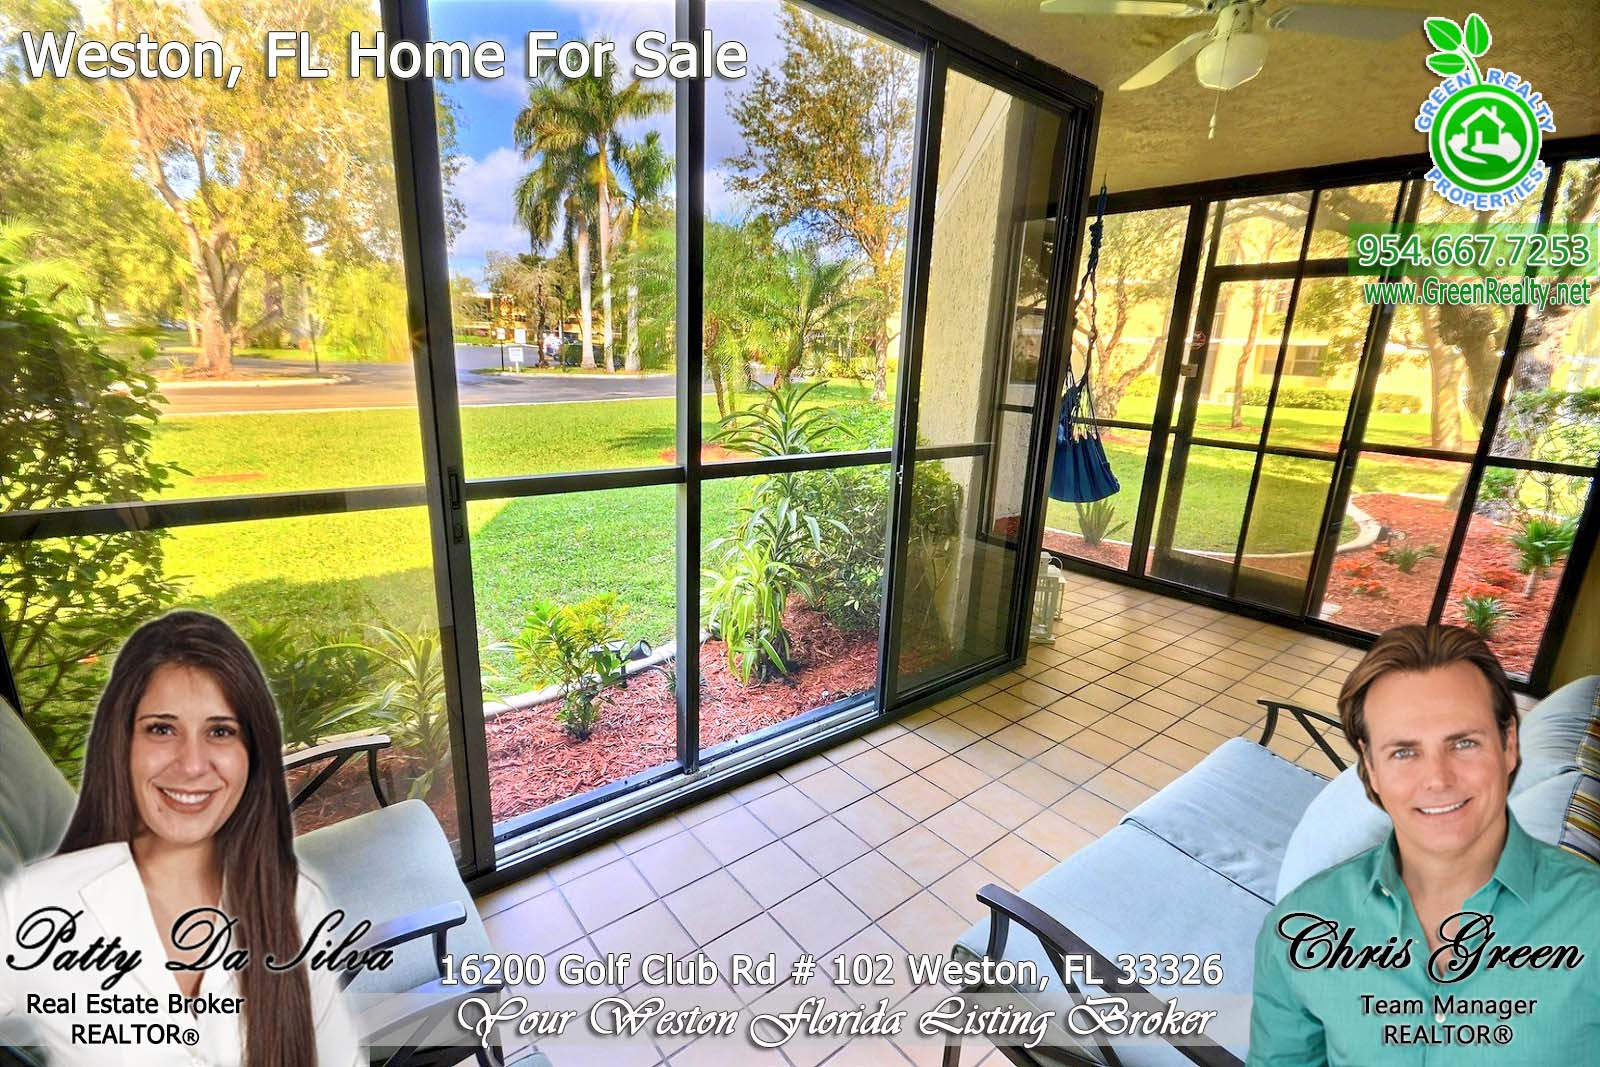 1 16200 Golf Club Rd, Unit 102, Weston FL 33326 (19)